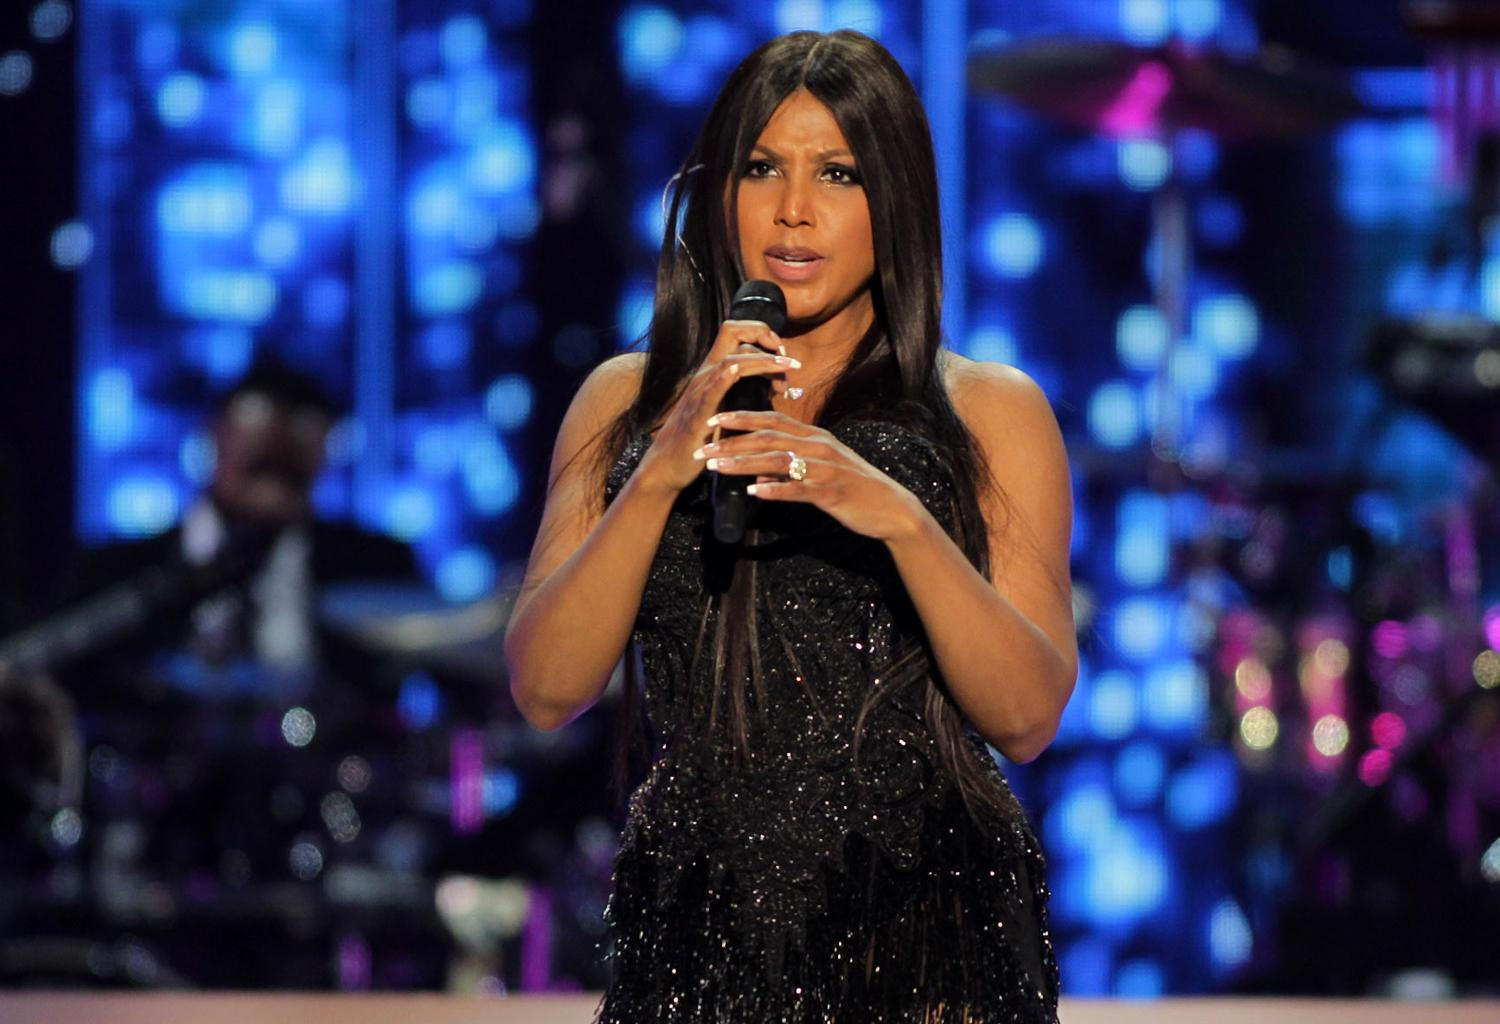 Toni Braxton Shares A Photo From Her Recent Pittsburgh Pride Performance But Fans Cannot Get Over The Latest Episode Of The Braxton Family Values